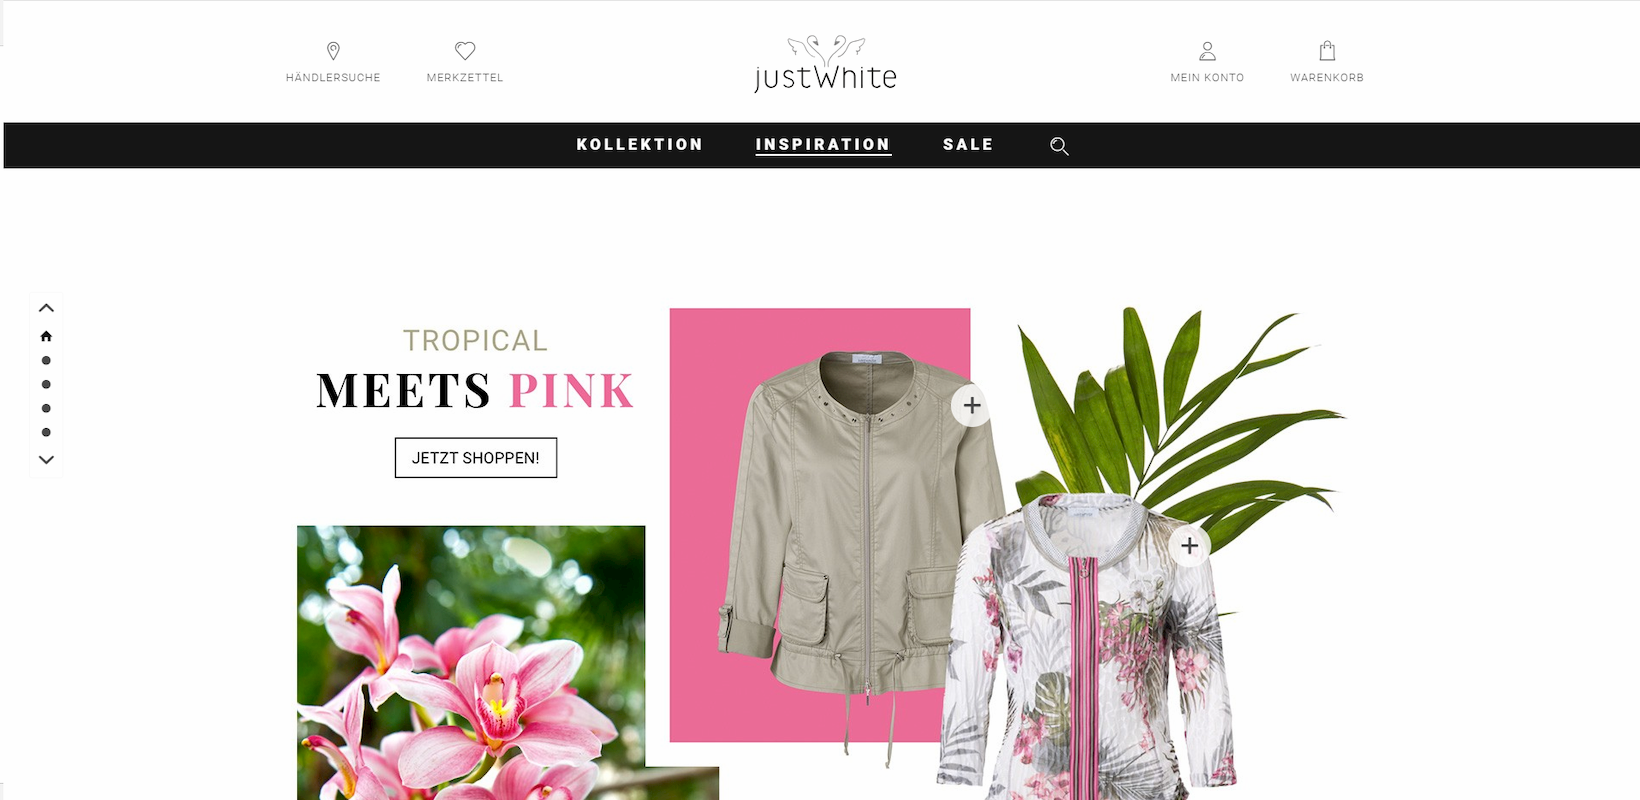 Onlineshop JUST WHITE auf Basis von Shopware